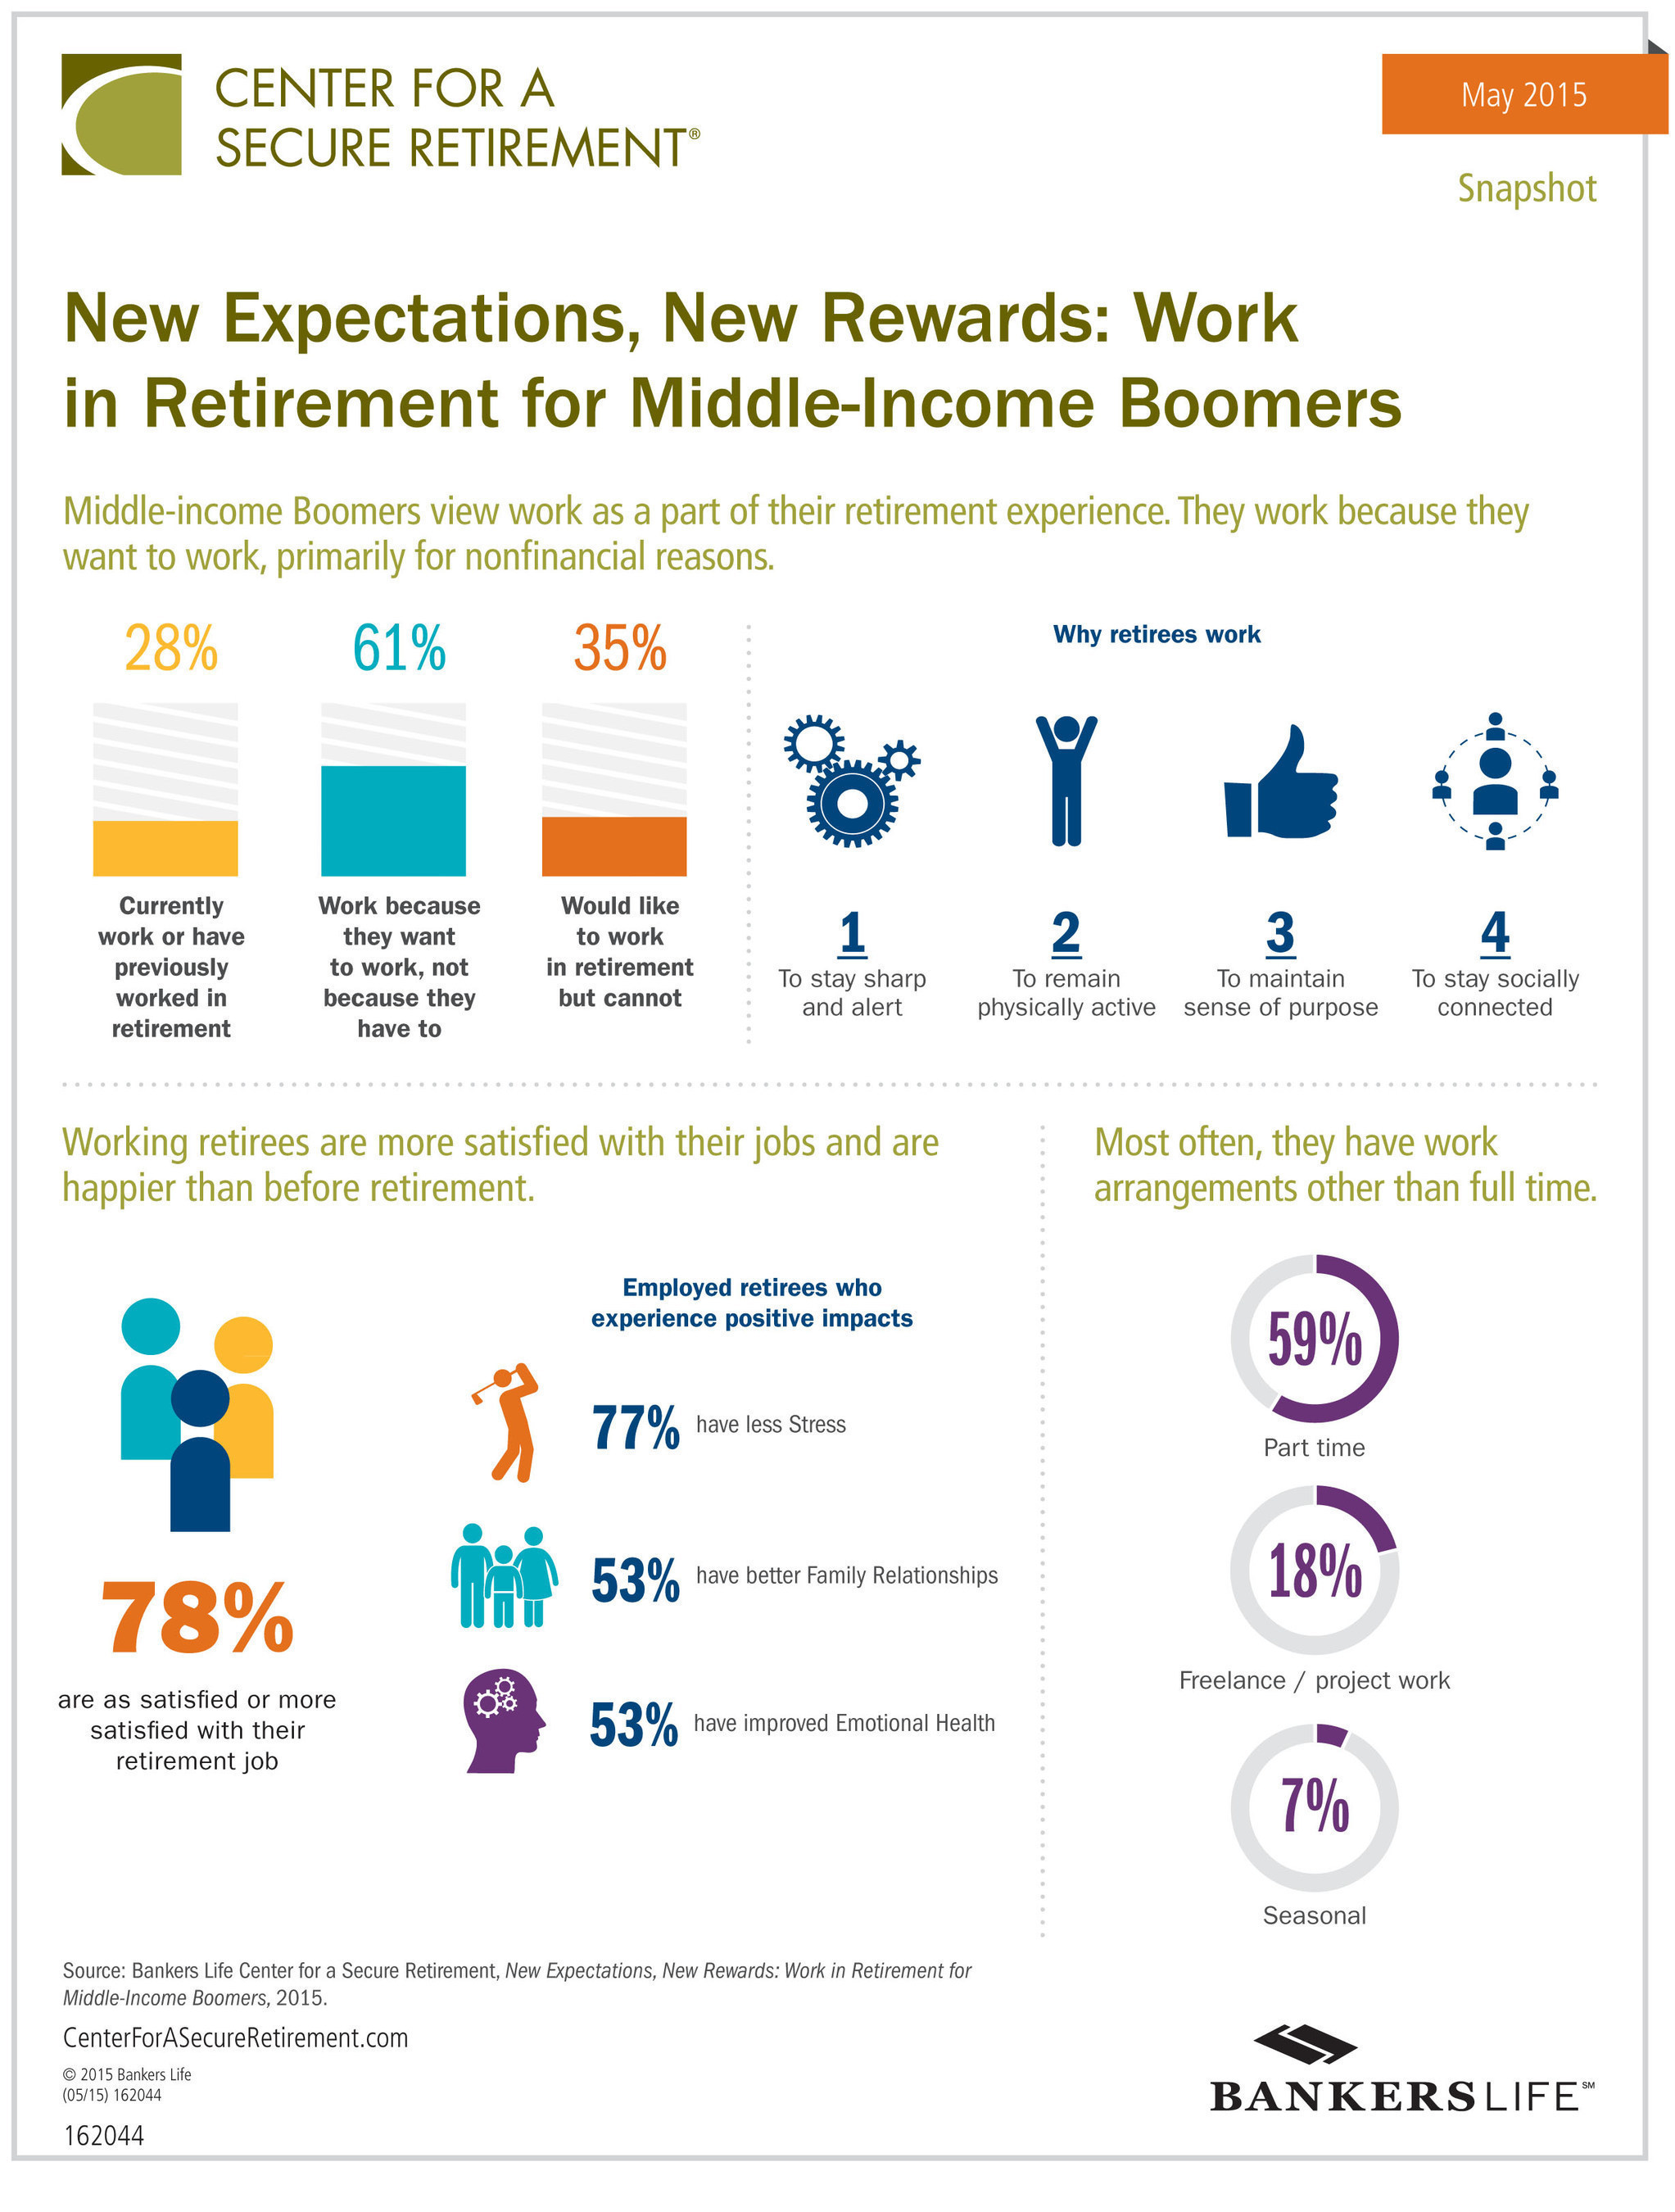 Employment Now Part of the Retirement Experience